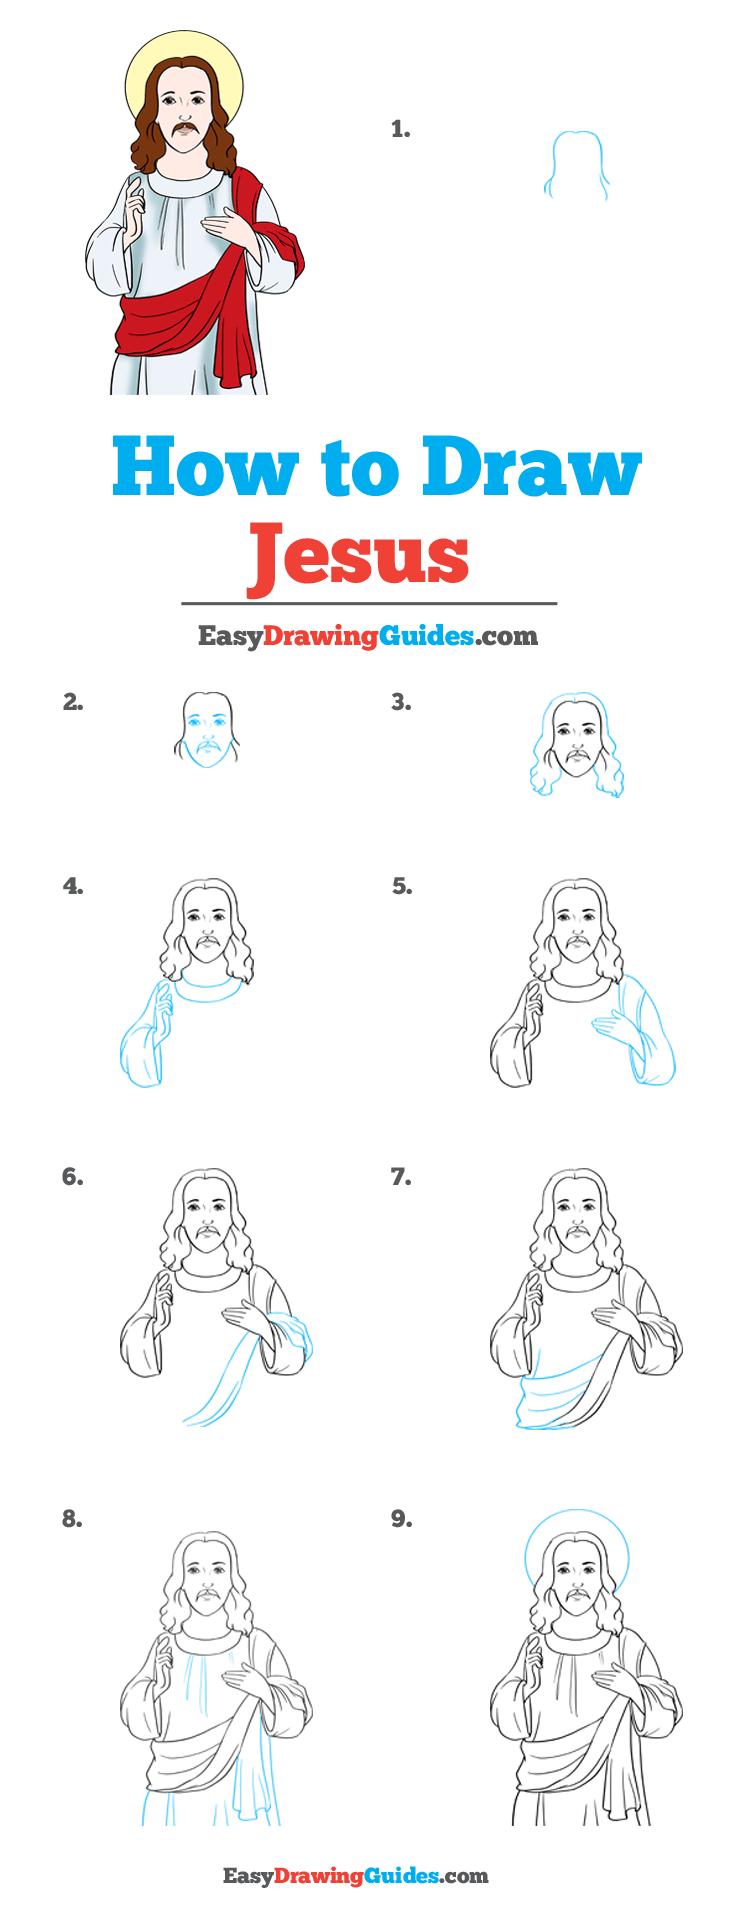 How to Draw Jesus